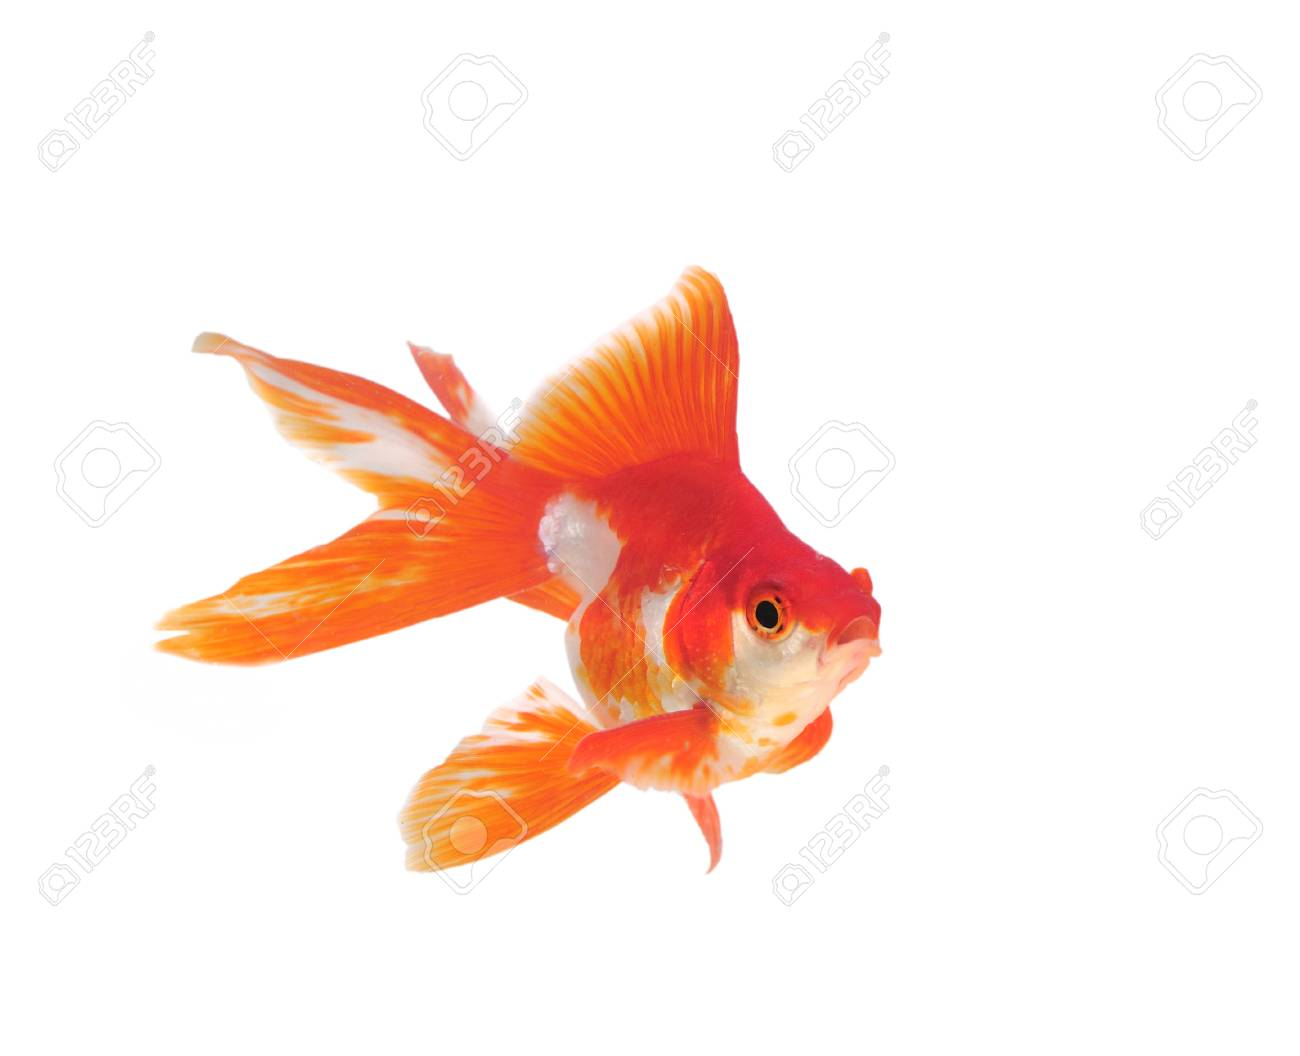 Gold fish isolated on a white background Stock Photo - 22936412